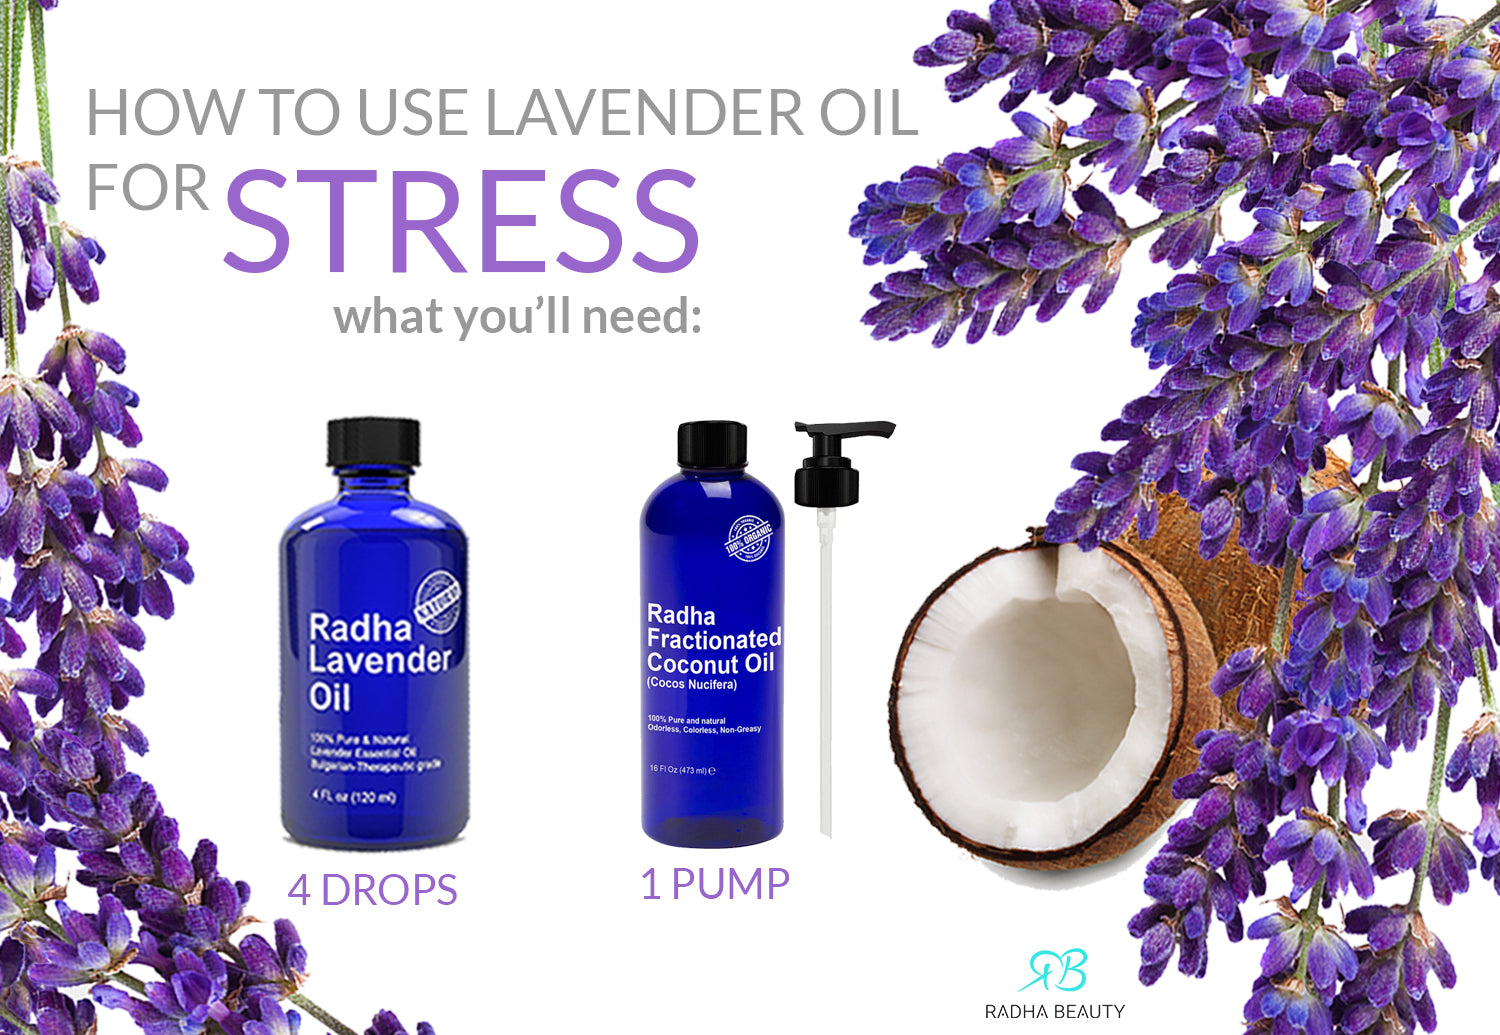 foto 4 Ways to Use Lavender